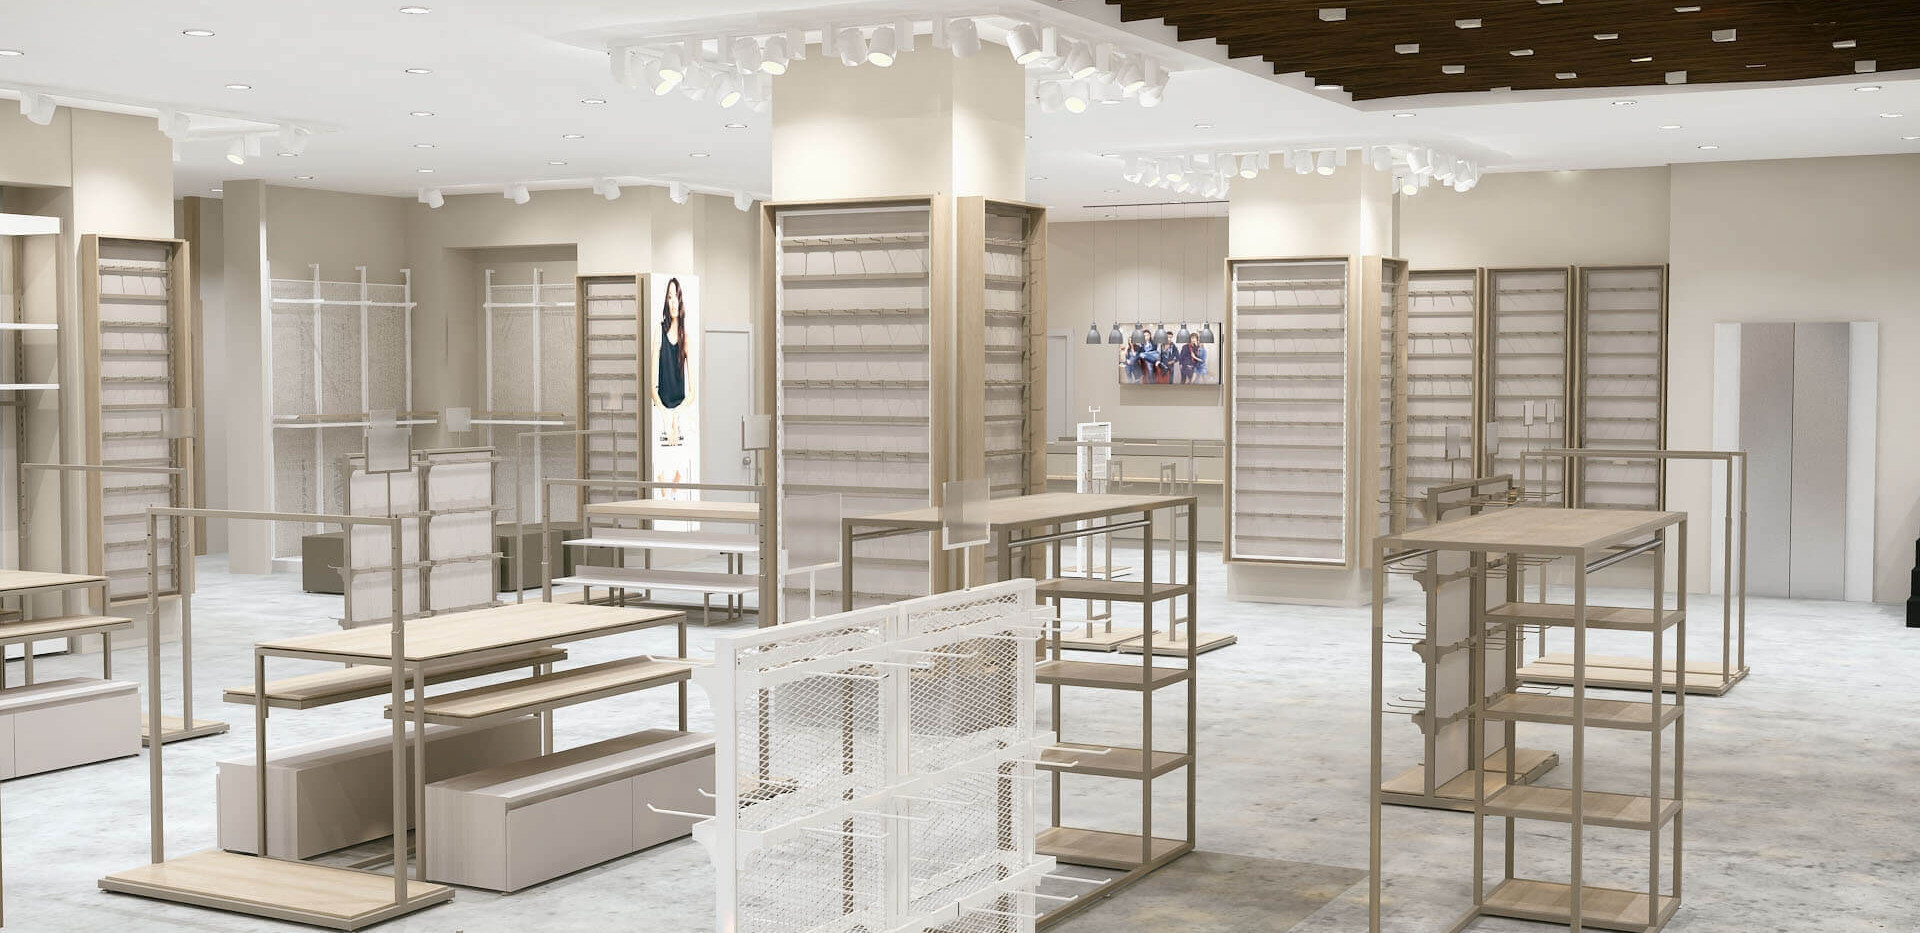 Cinici_-_Fashion_Store_Shop_Design-1.jpg